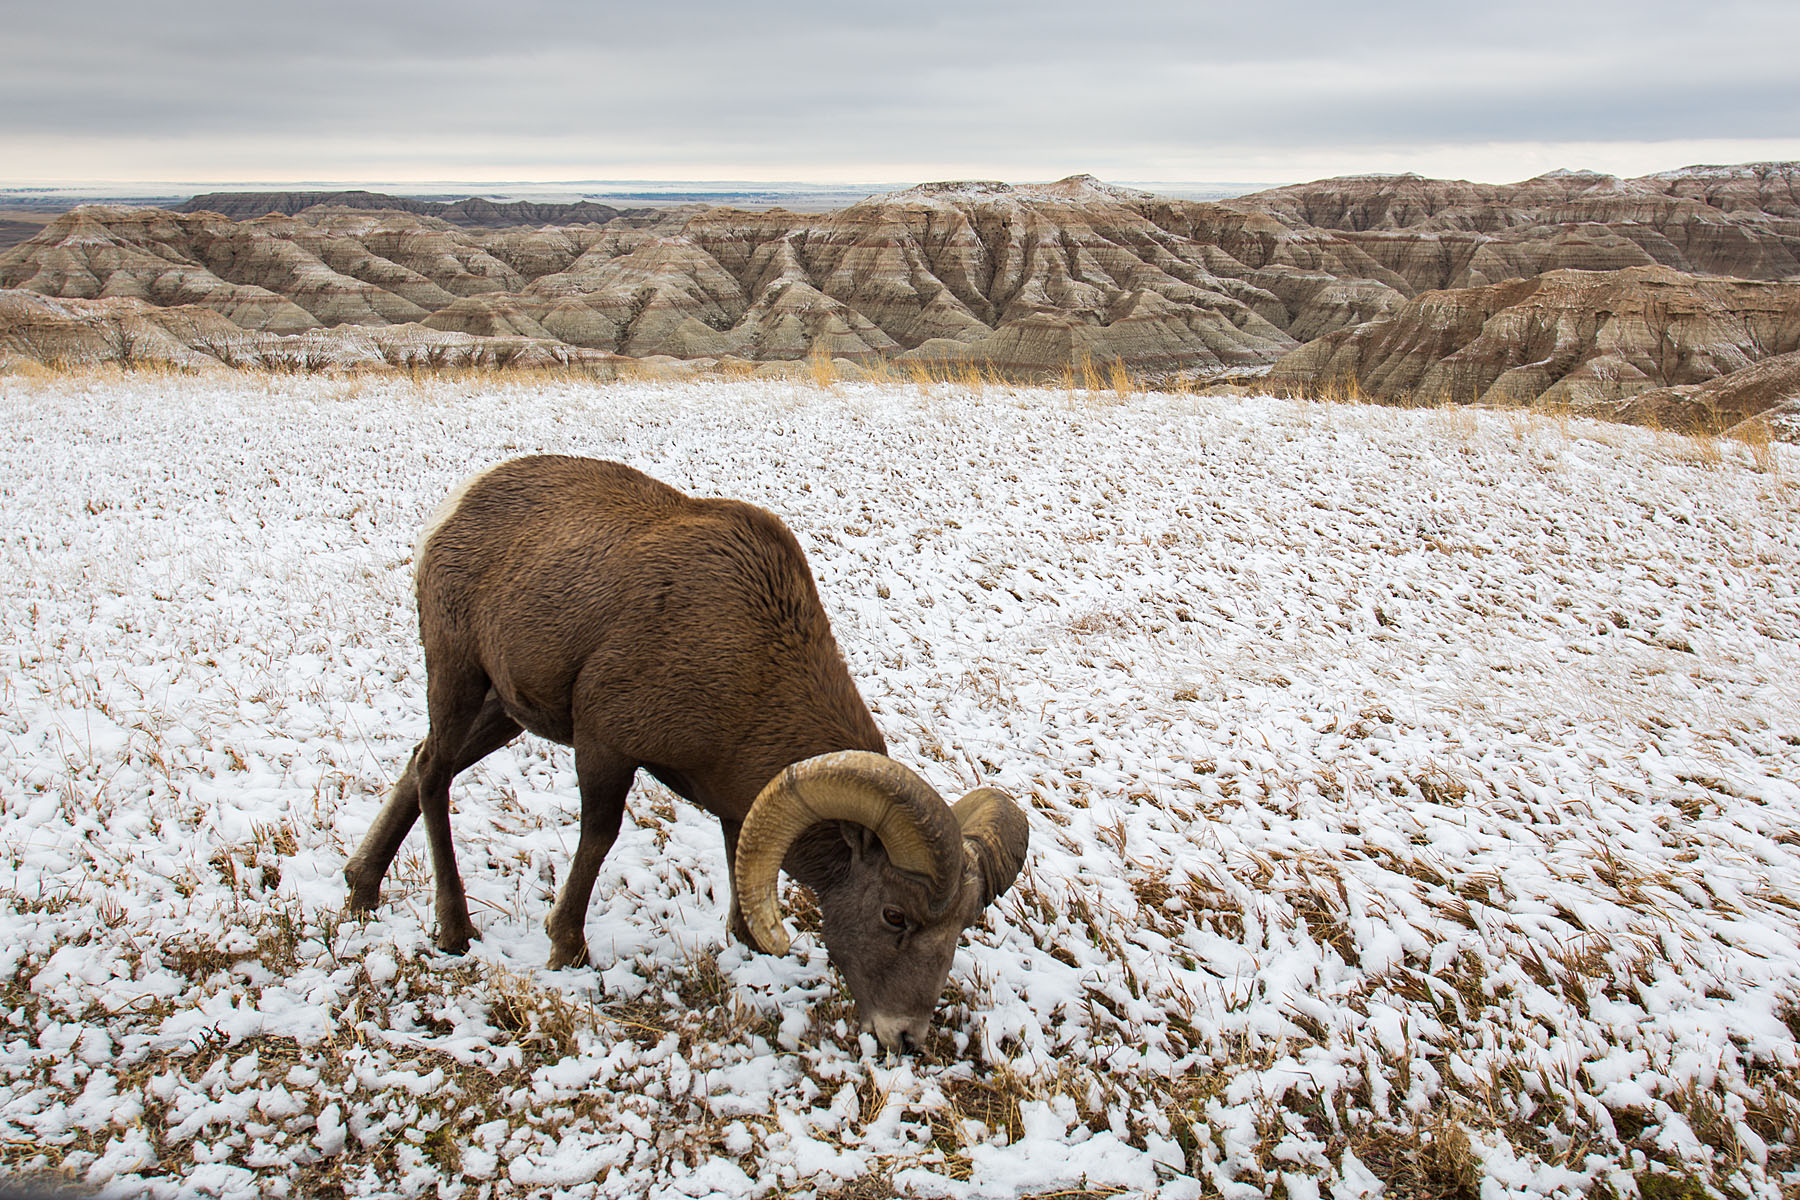 Bighorn sheep in South Dakota Badlands after an October snow.  I was on the wrong side of the car so I passed the camera to my future fiancé Sue, who took this shot.  Click for next photo.